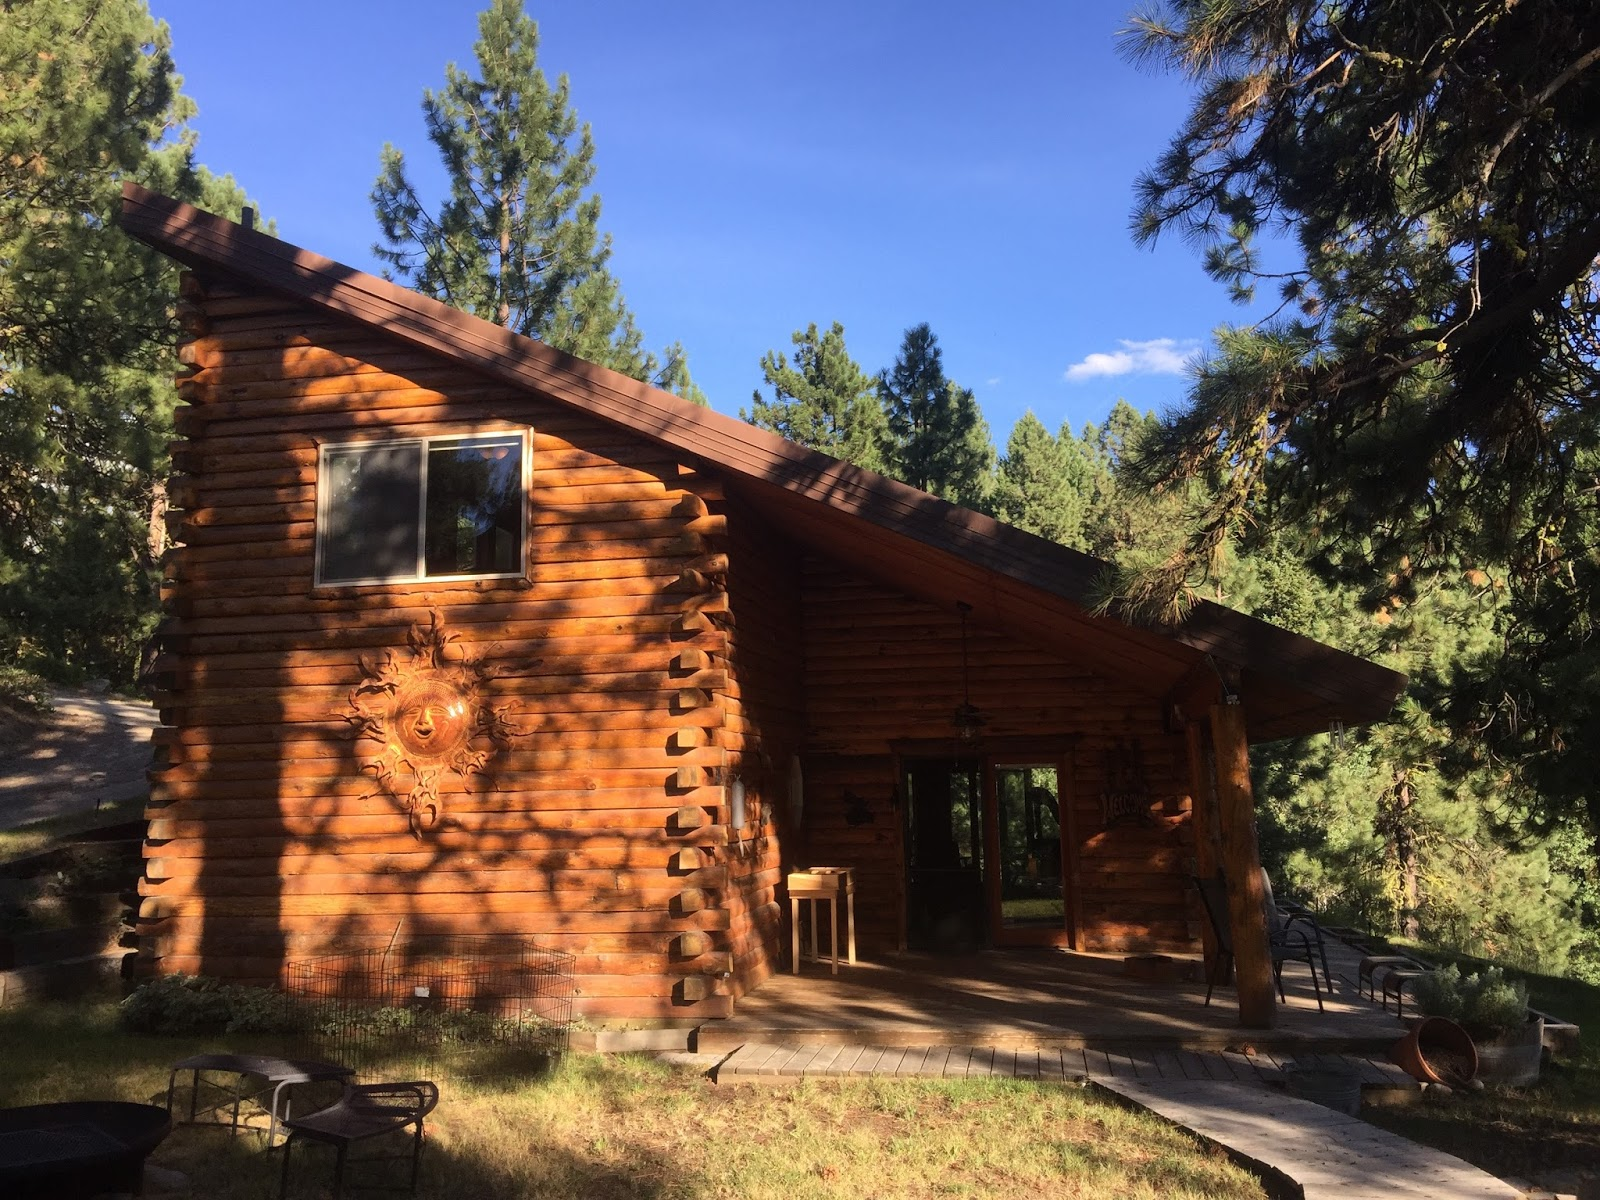 Lowe 39 s flat fee realty cascade home near lake for Cascade house